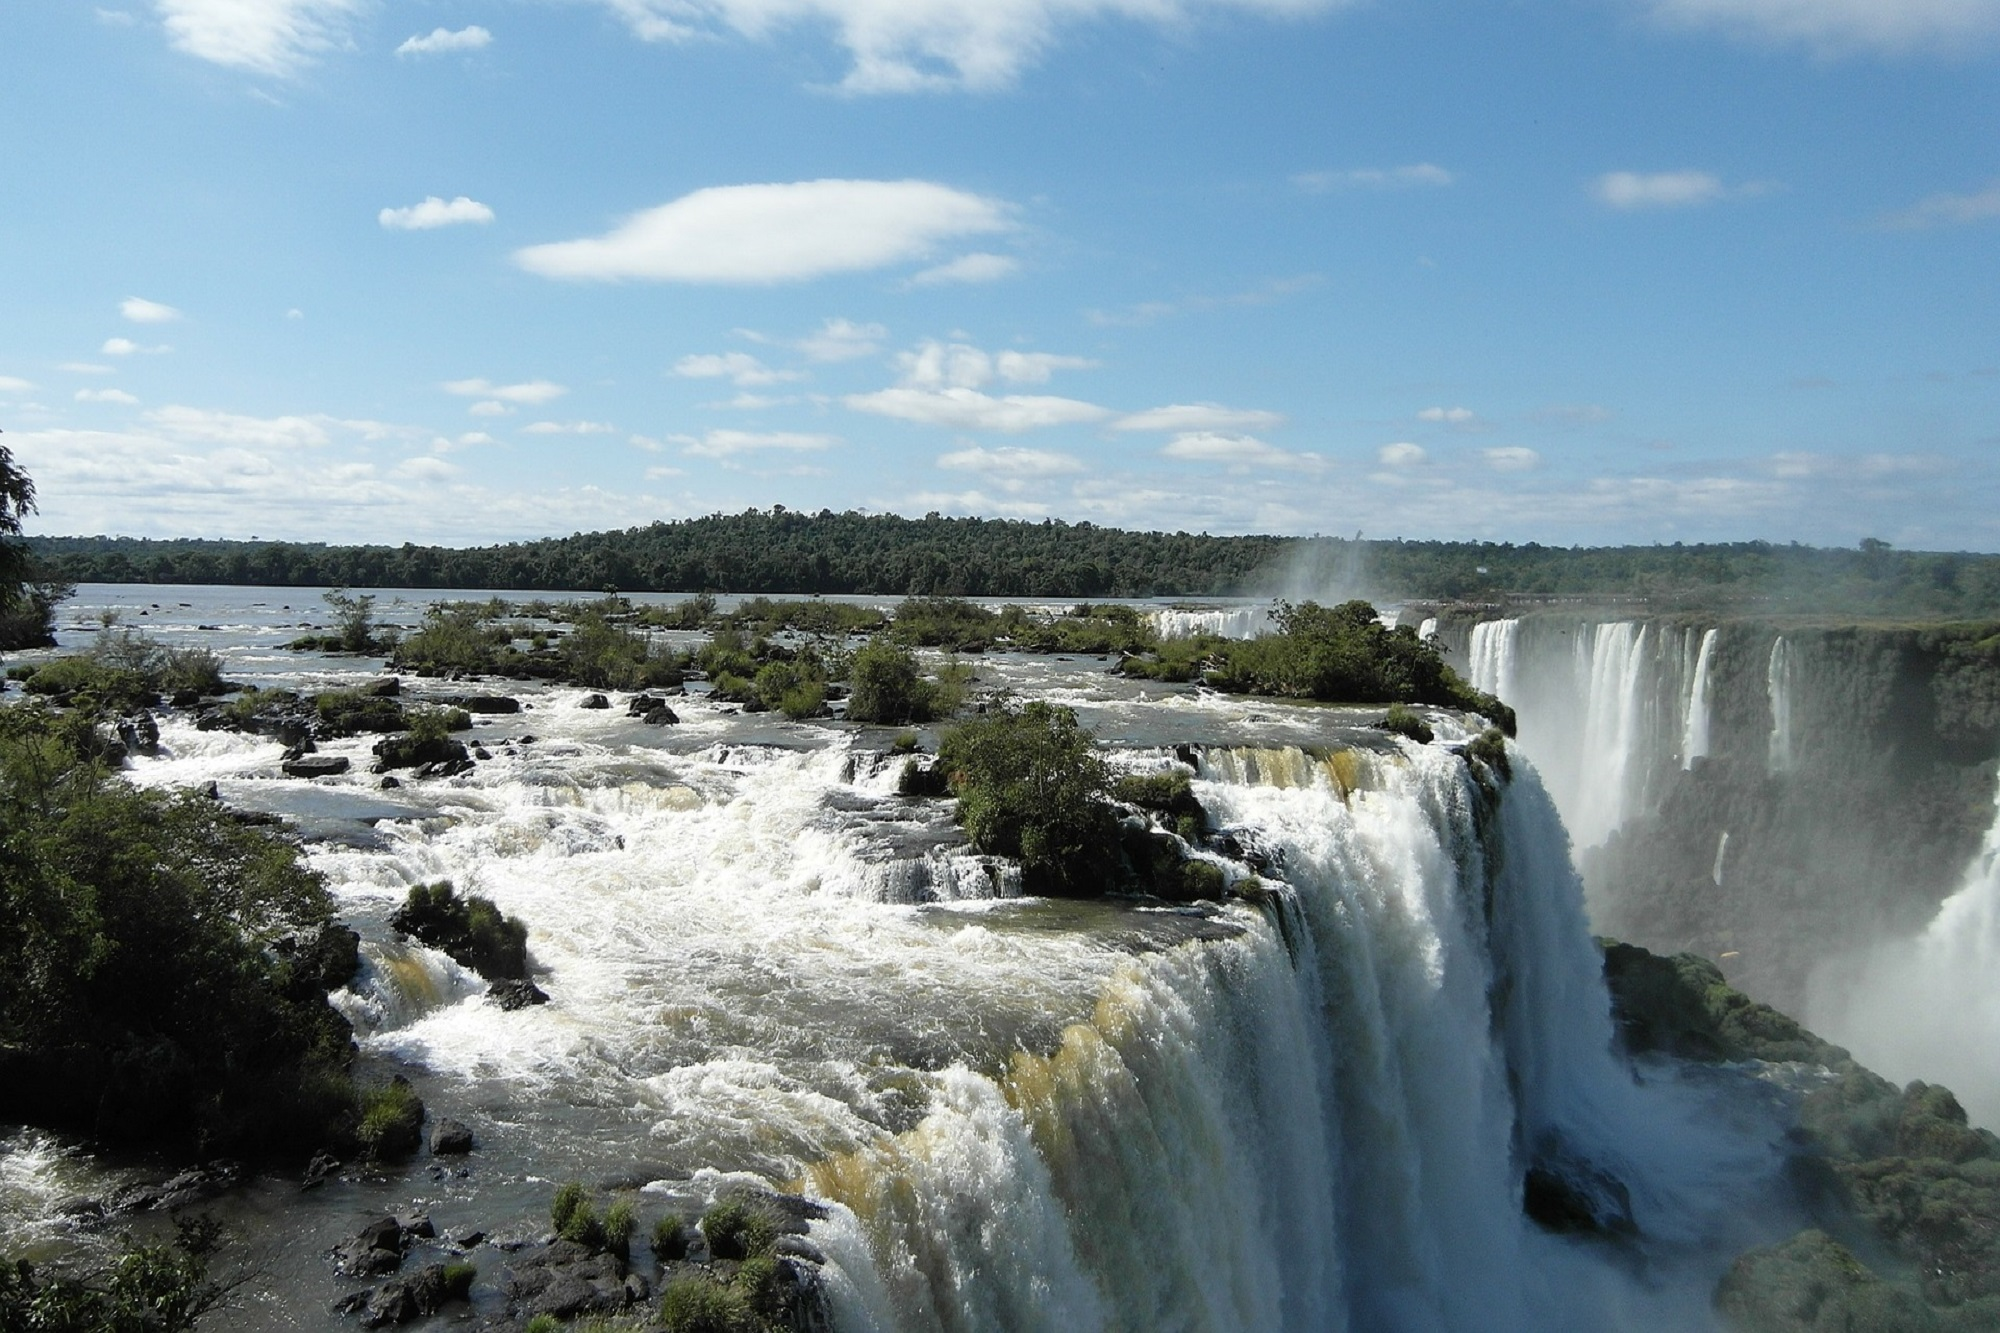 foz-do-iguacu-221289_1920